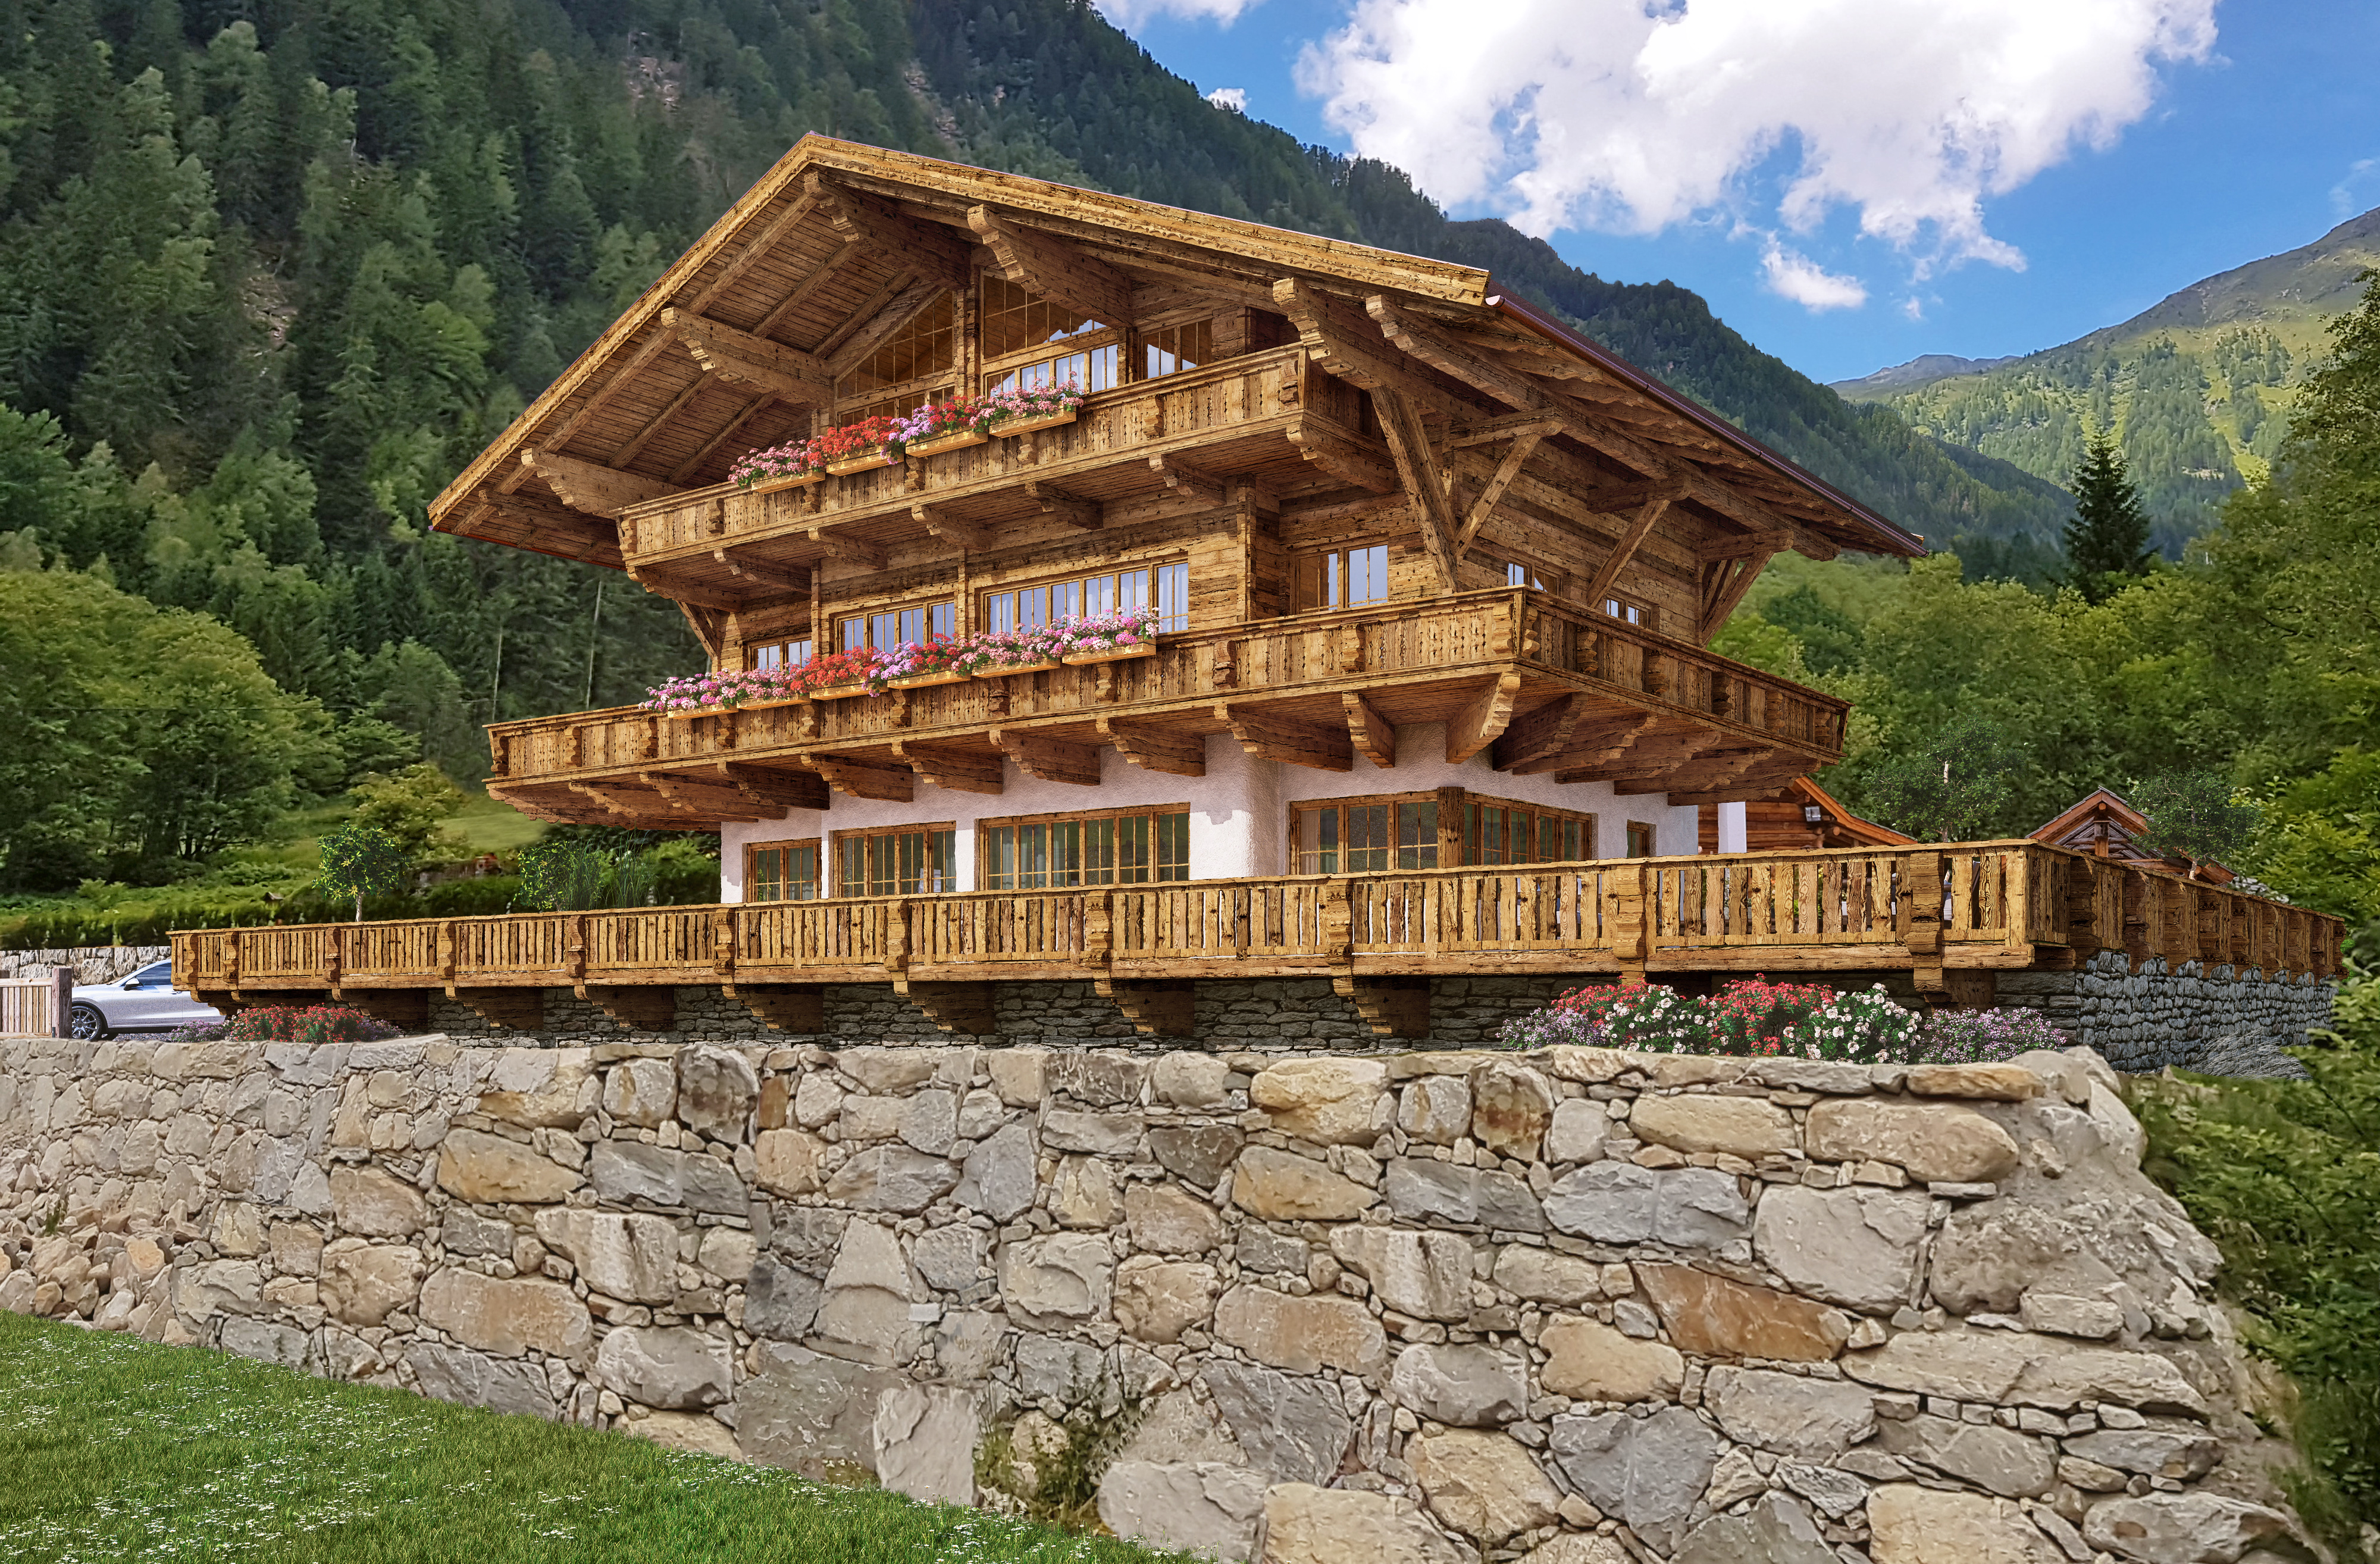 Grand Chalet Altholzchalet Musterhausanlage Innerfragant